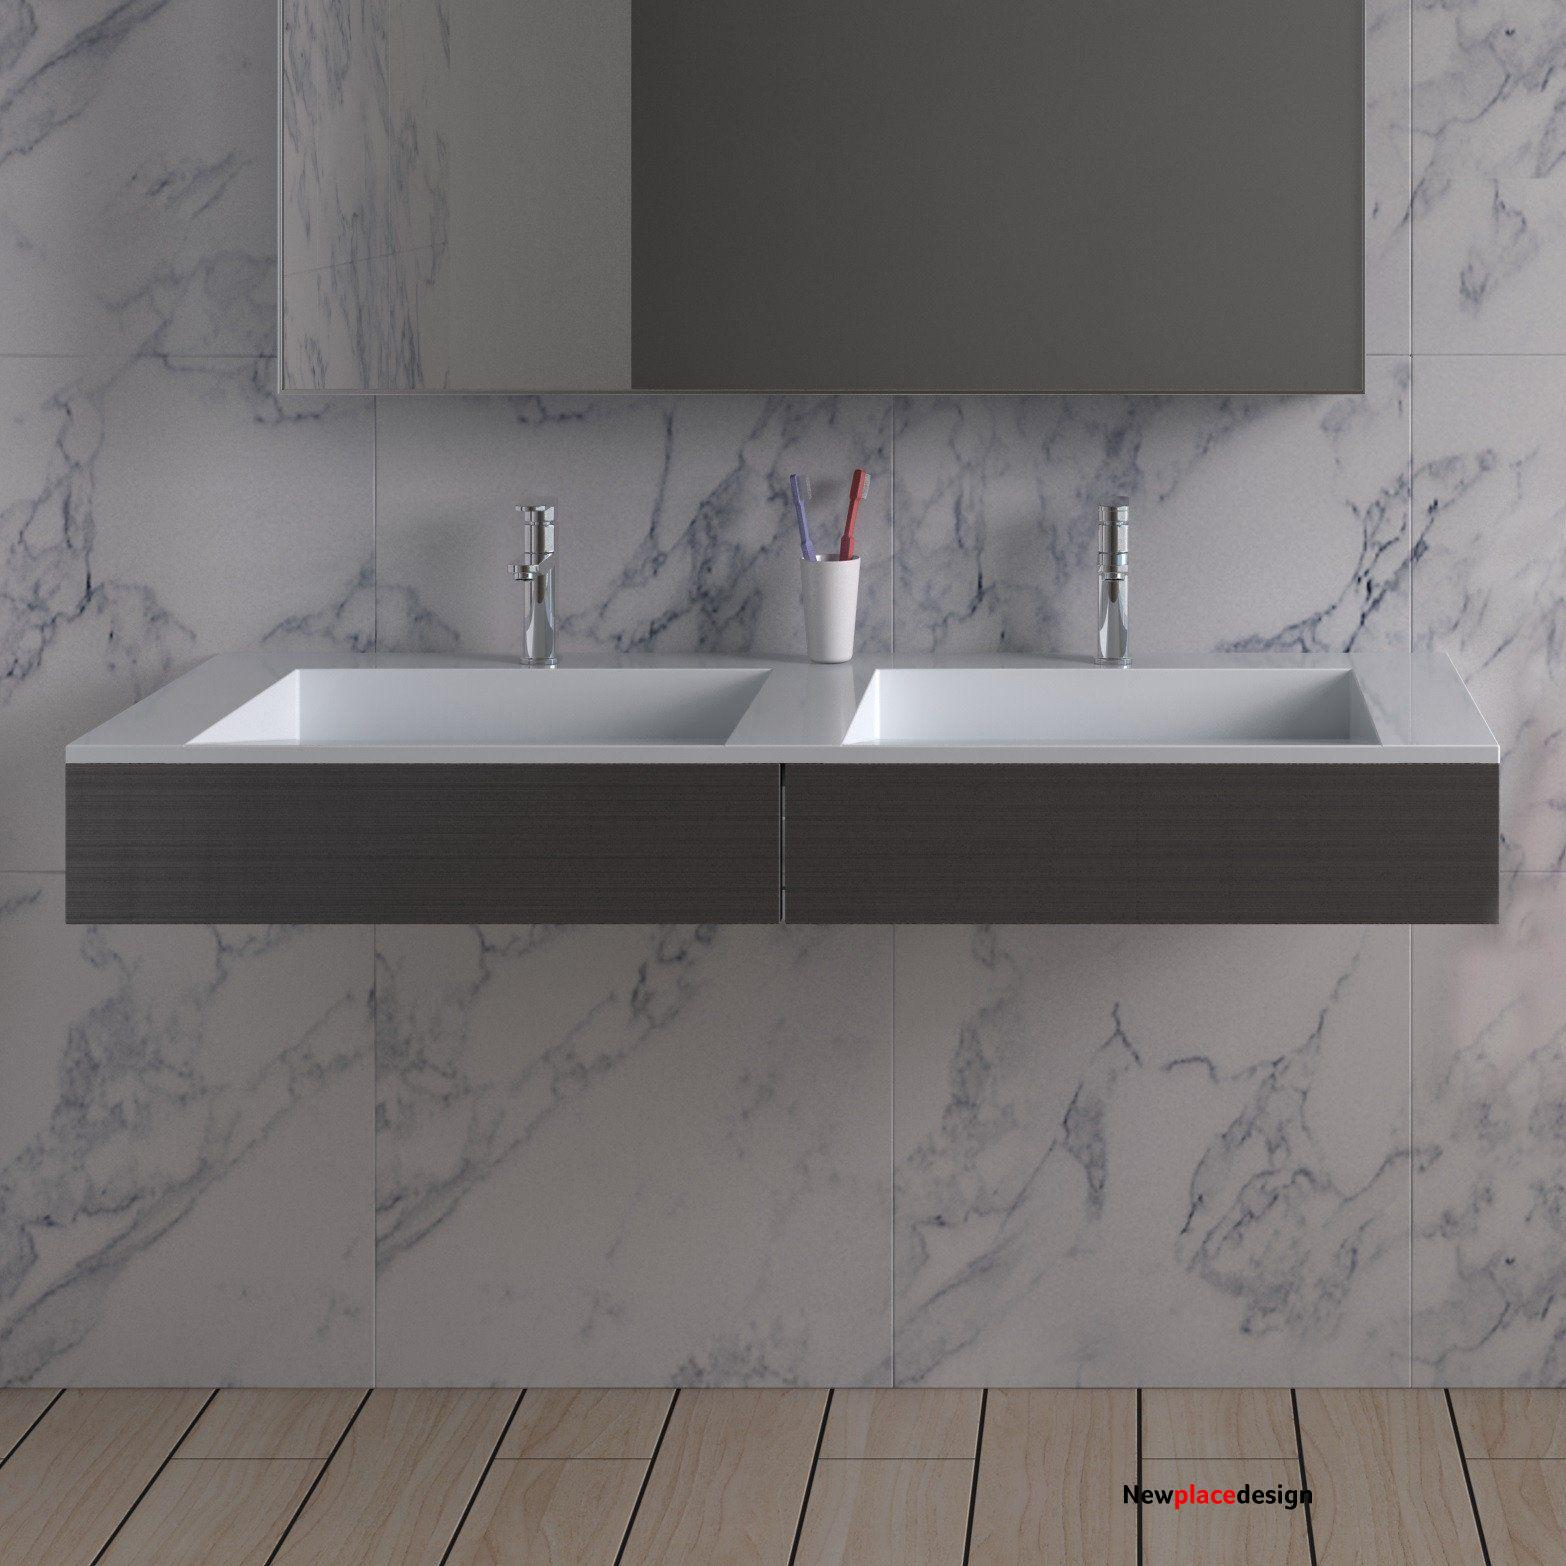 DW-112 (47 x 20) - Matte White Top - Stainless Steel Panels